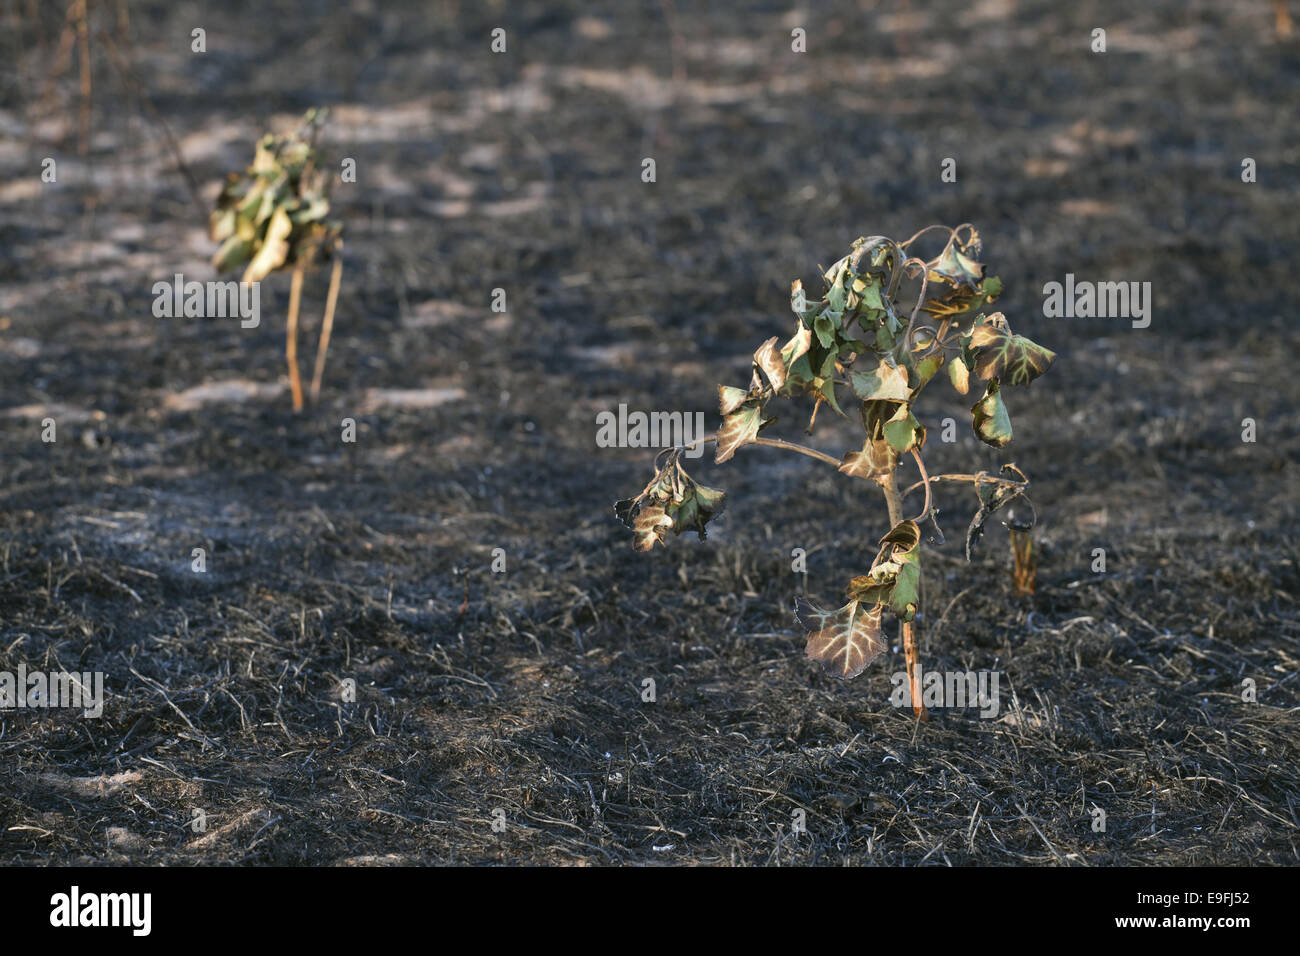 Dead plants with burnt ground in the back - Stock Image